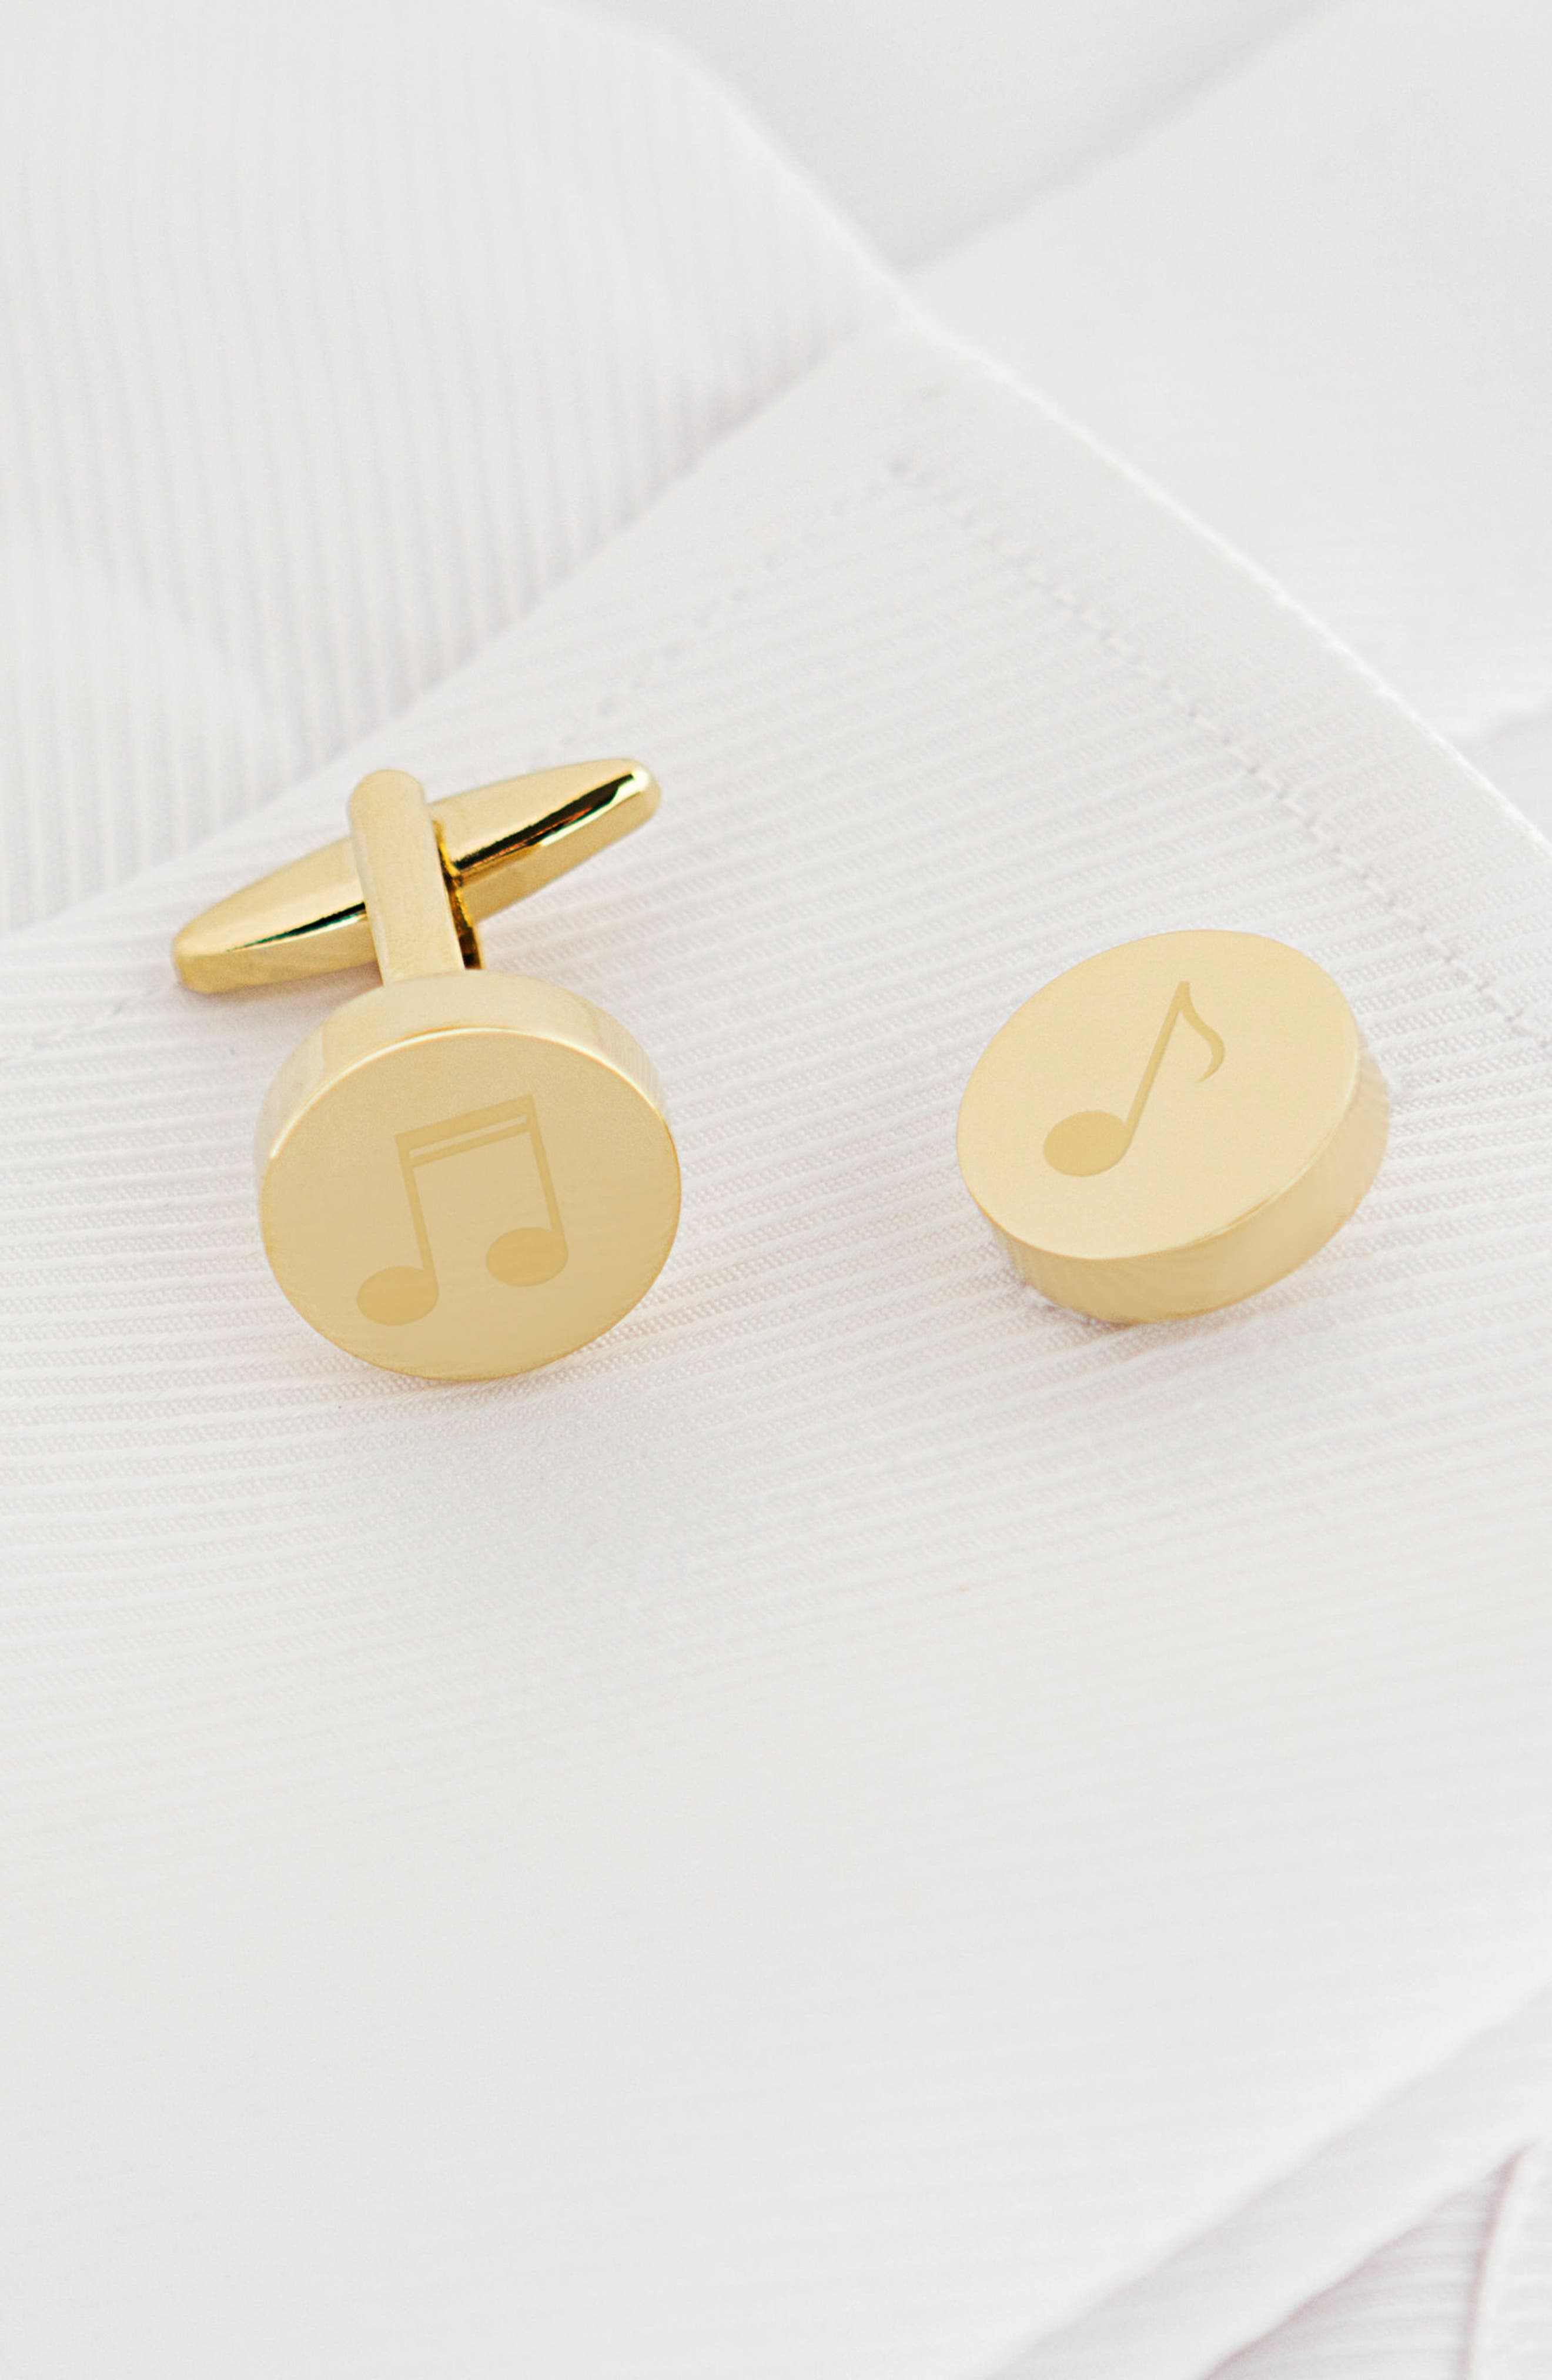 Music Notes Cuff Links,                             Alternate thumbnail 2, color,                             Gold